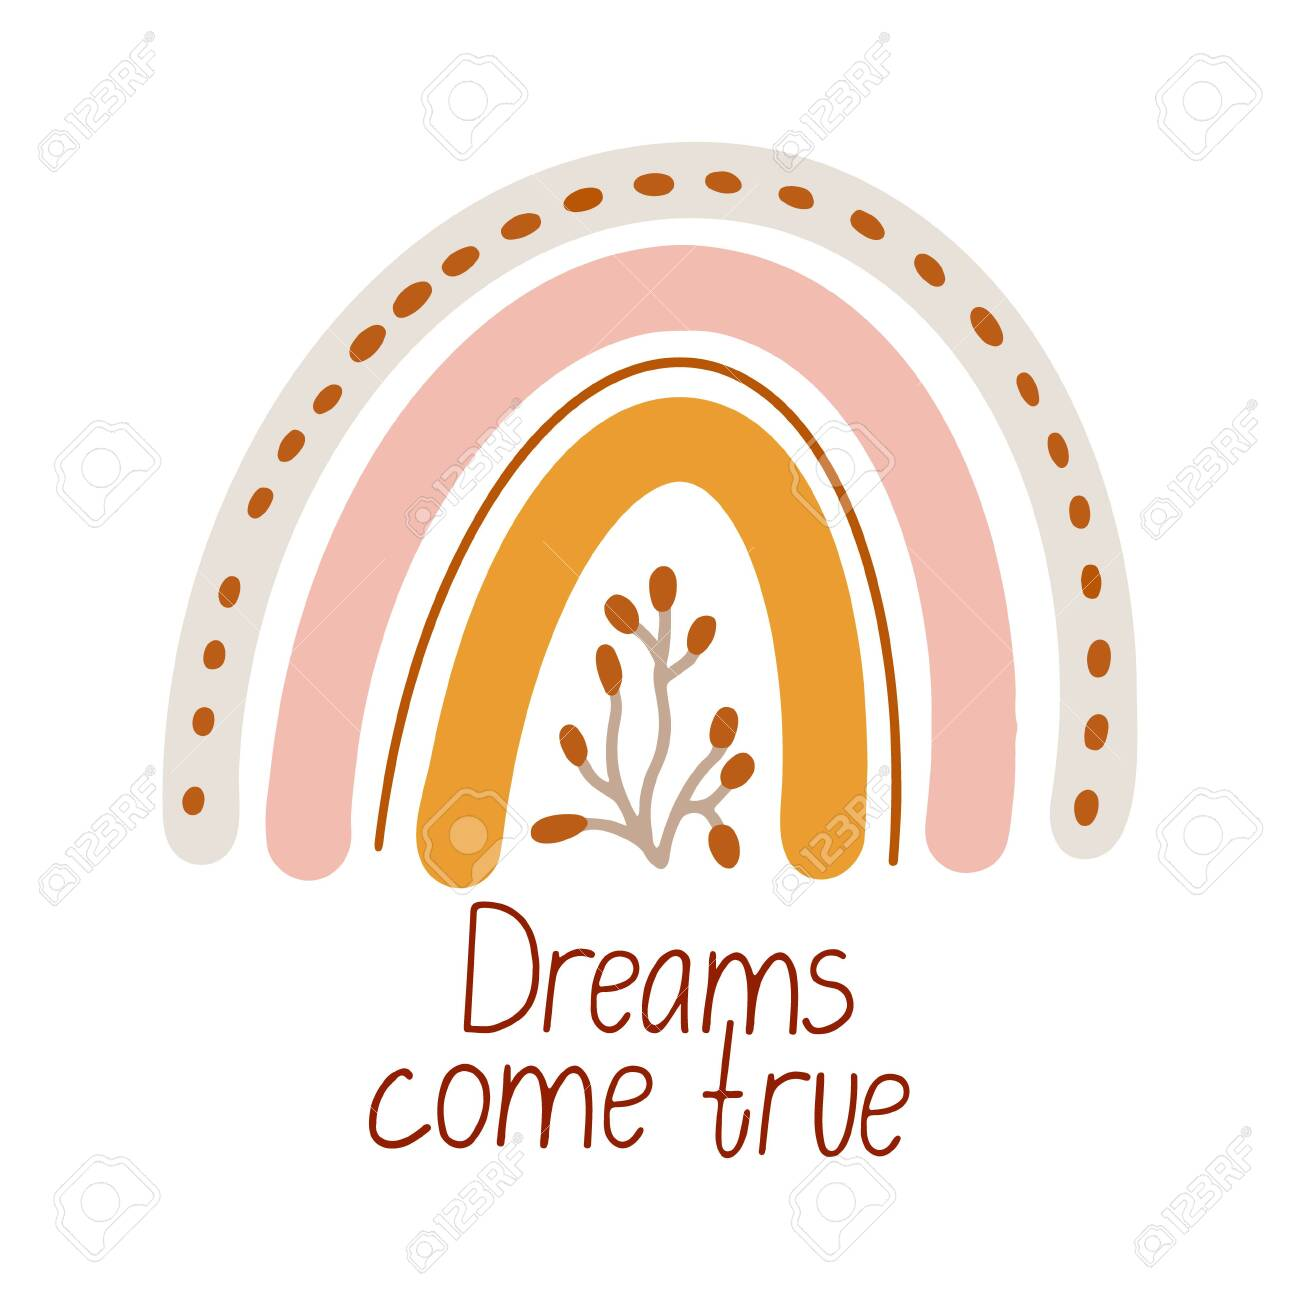 Cute vector poster with boho rainbow decorated with a sprig. Dreams come true lettering. Great for kids playroom or bedroom decoration. Hand drawn illustration isolated on white. Muted colors. - 154995650